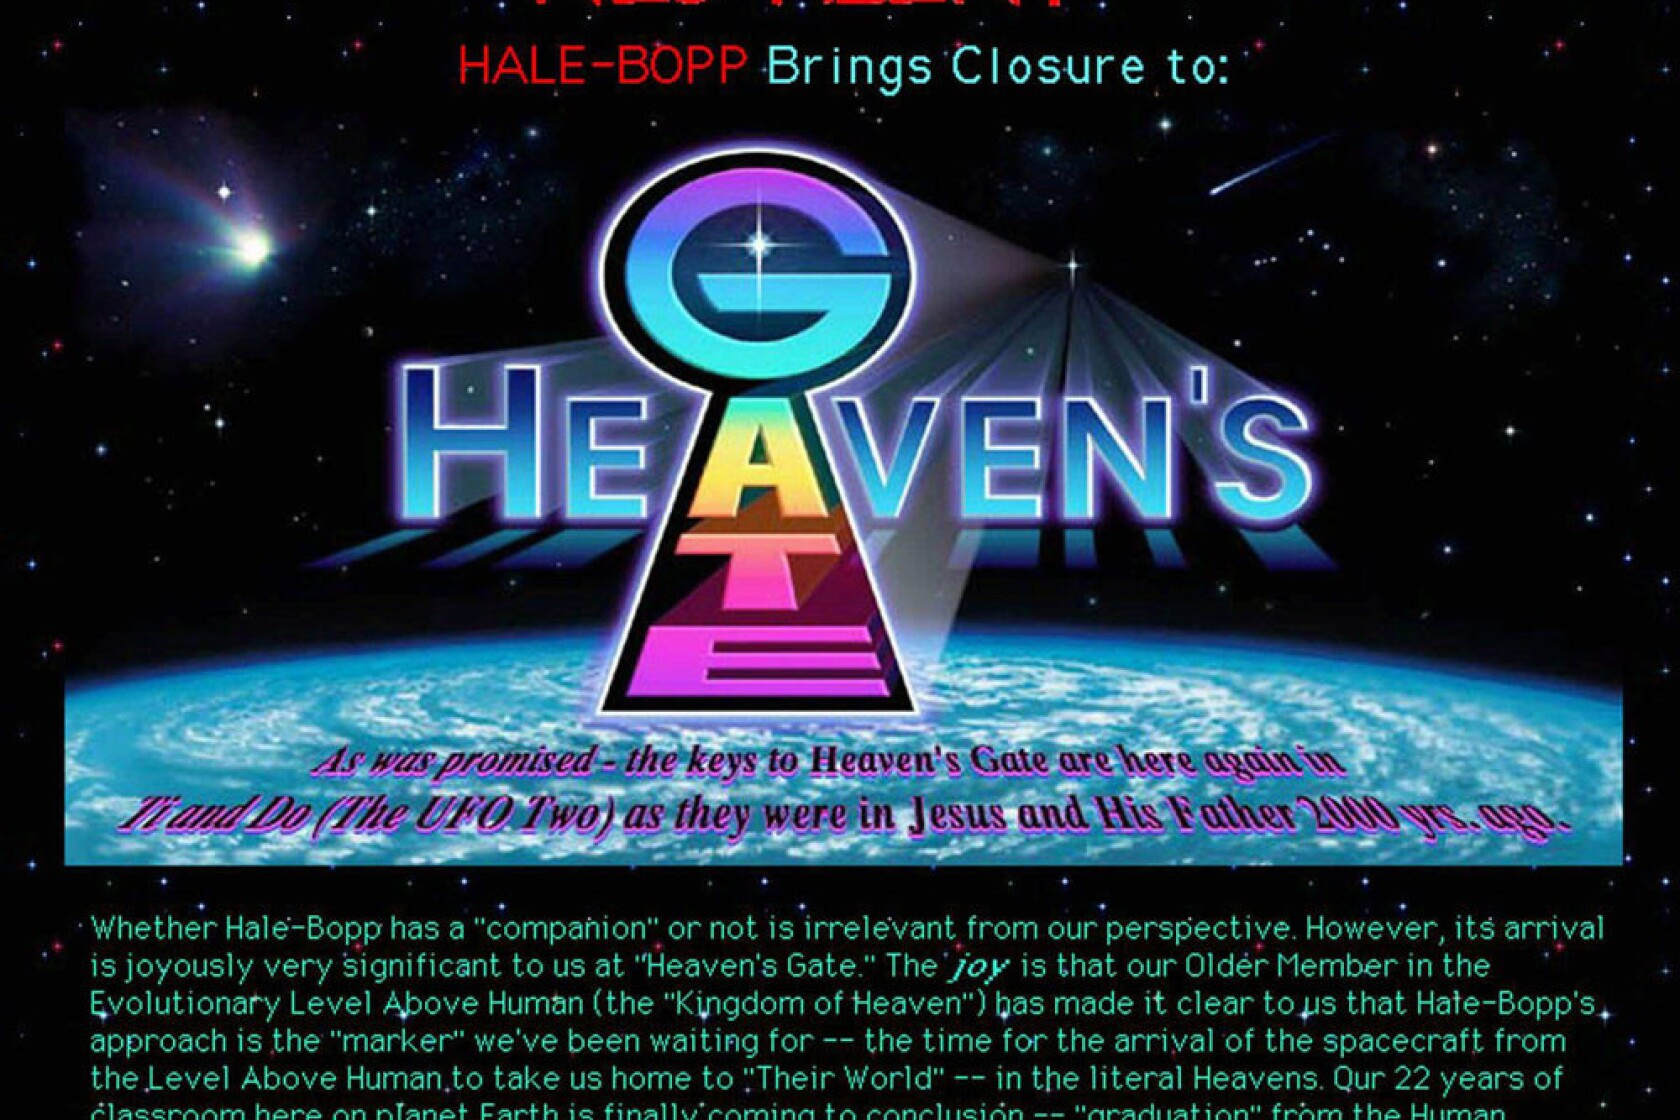 29454dfe5 20 years later, Heaven's Gate lives on — via internet, scholarly ...